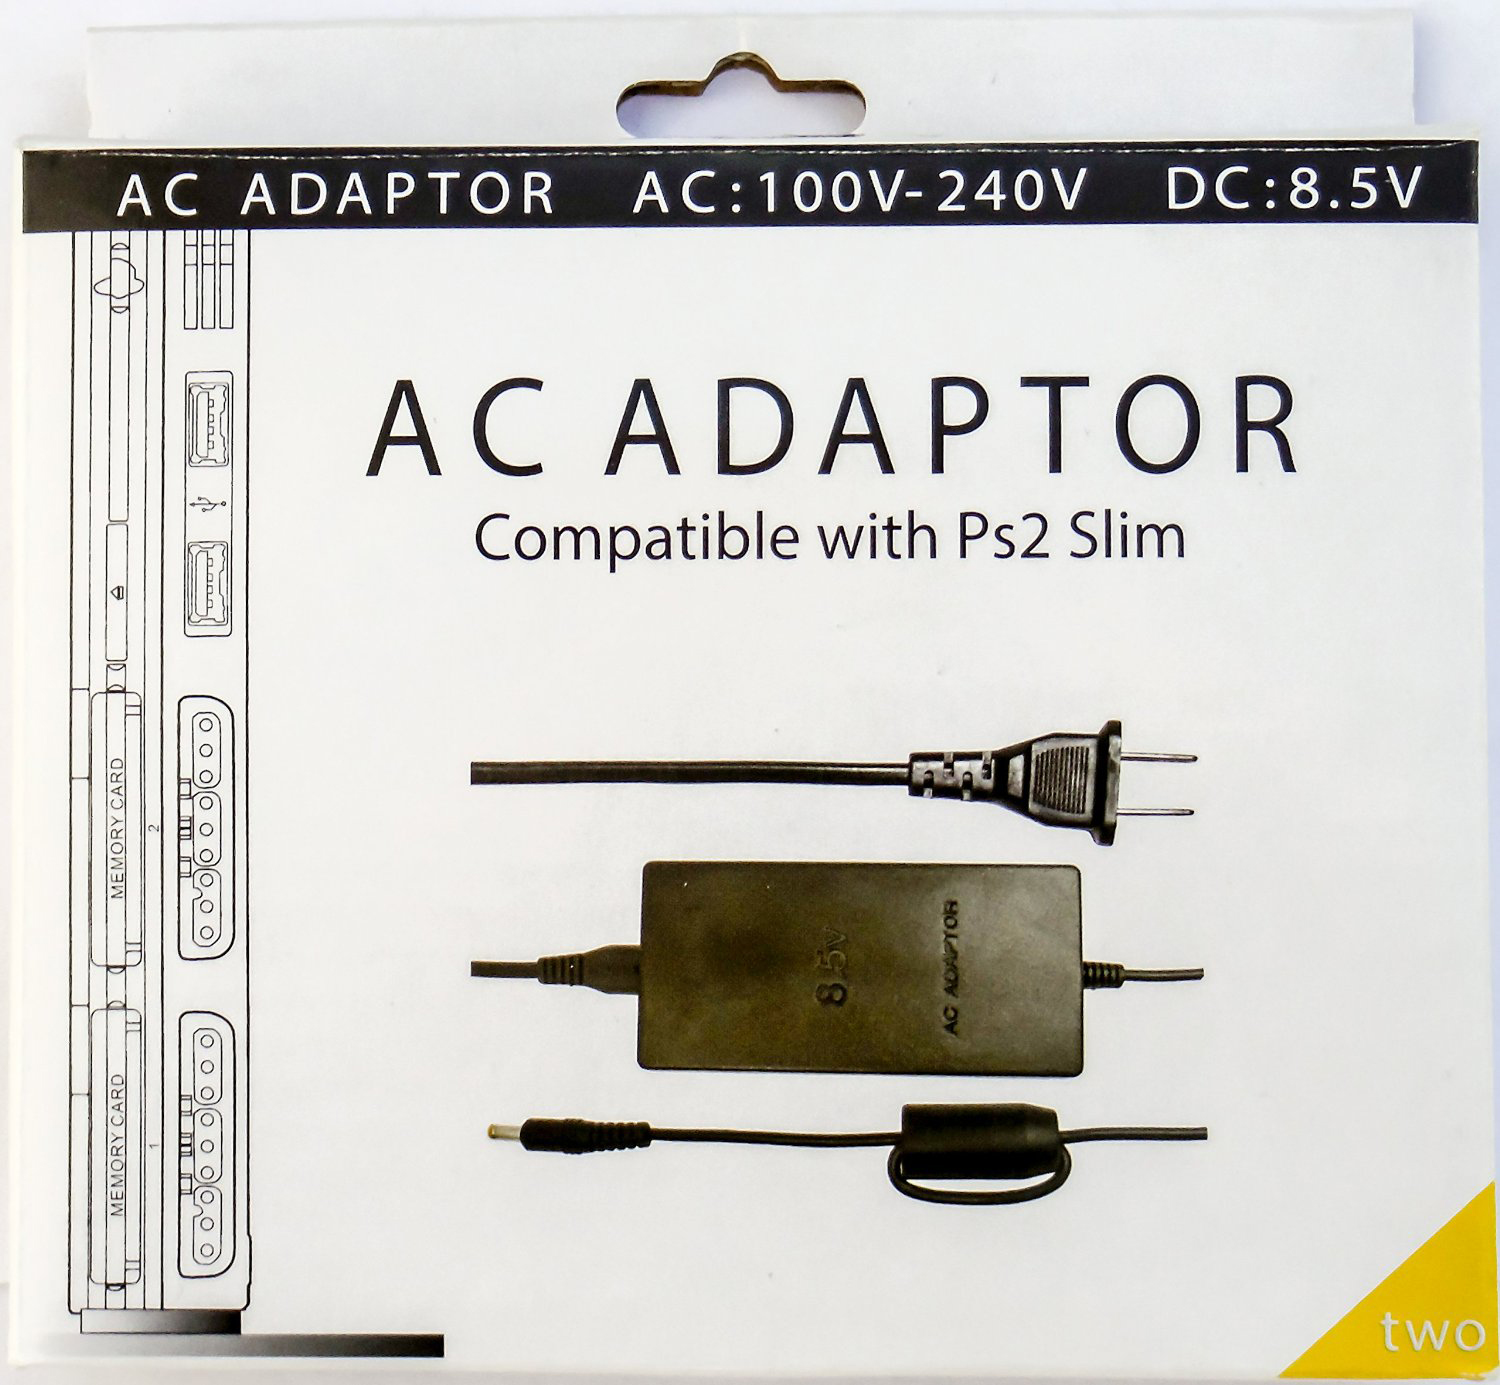 sony playstation 2 slim. ps2 ac adapter for sony playstation 2 slim 7000 9000 series playstation